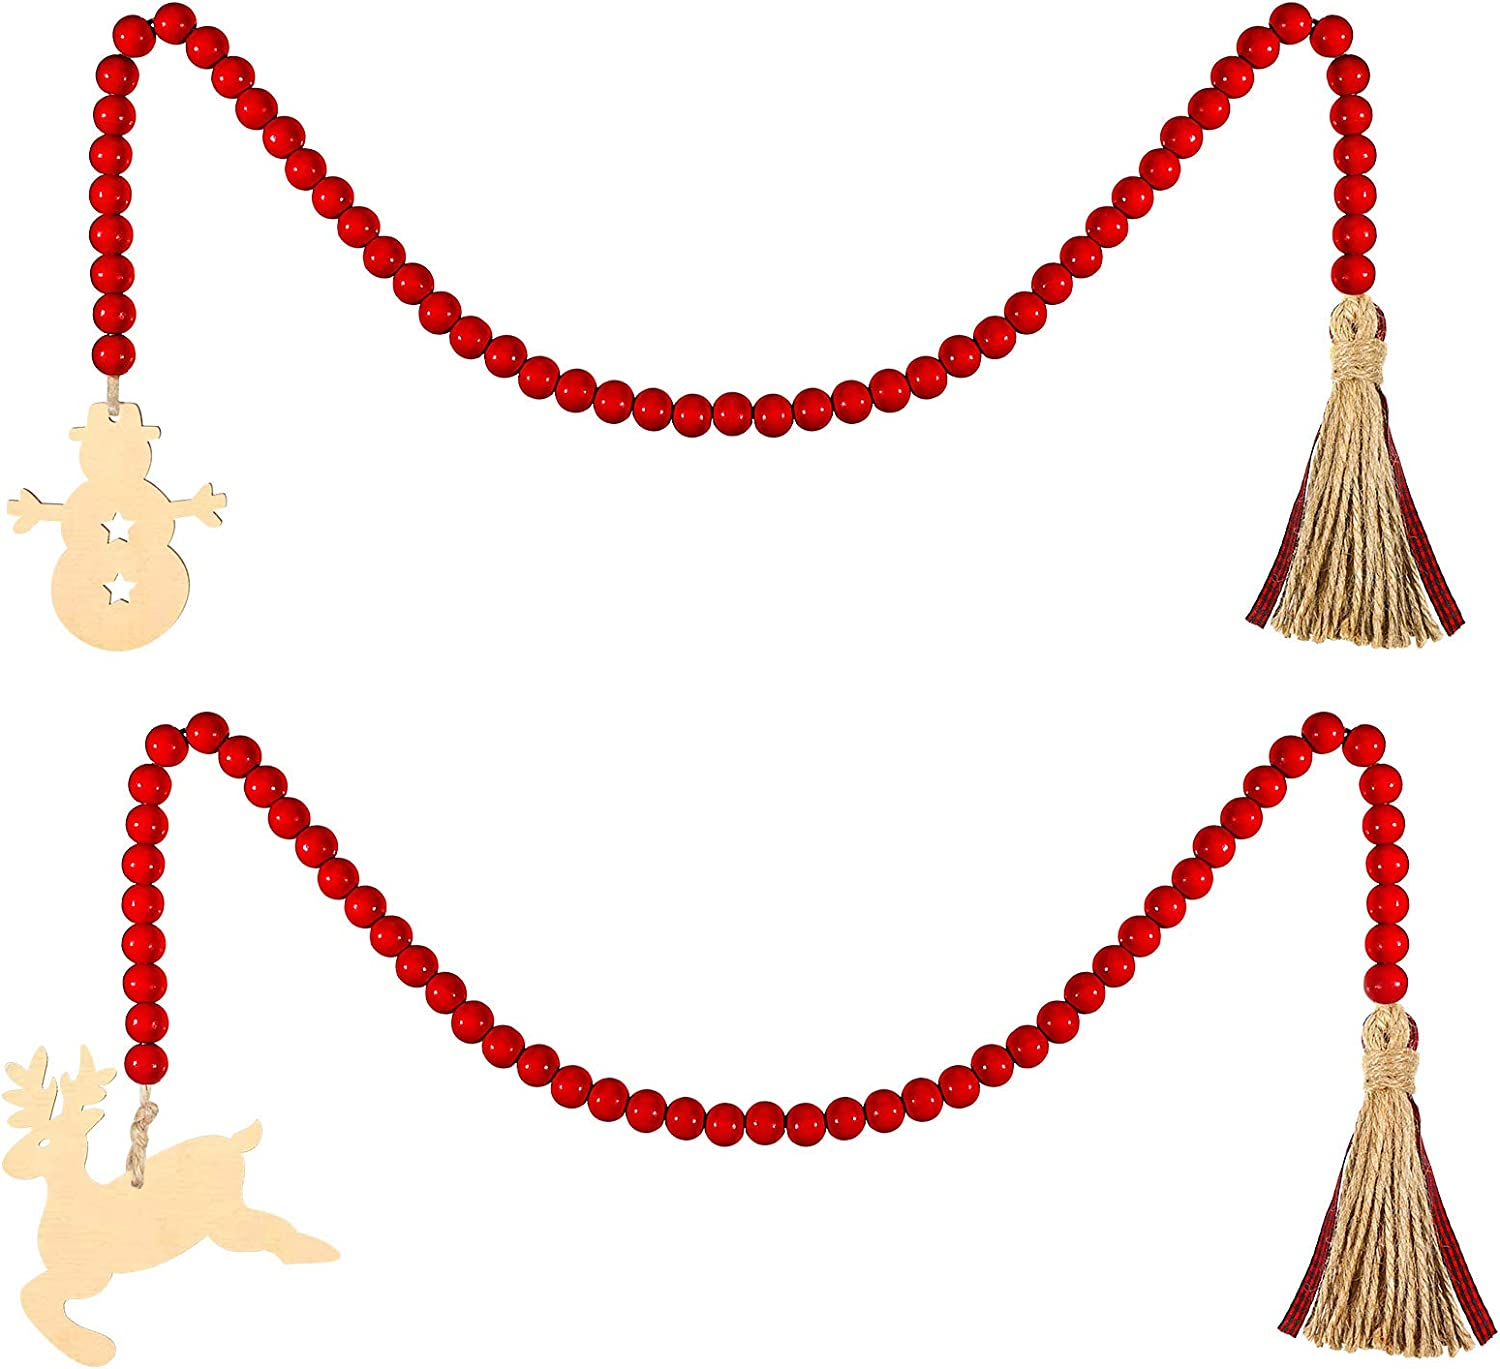 Christmas Wooden Beads Garland with Tassels, Christmas Snowman and Elk, Red Wooden Beads Hanging Garland Rustic Farmhouse Beads with Buffalo Plaid Tassels for Wall Hanging Home Ornaments